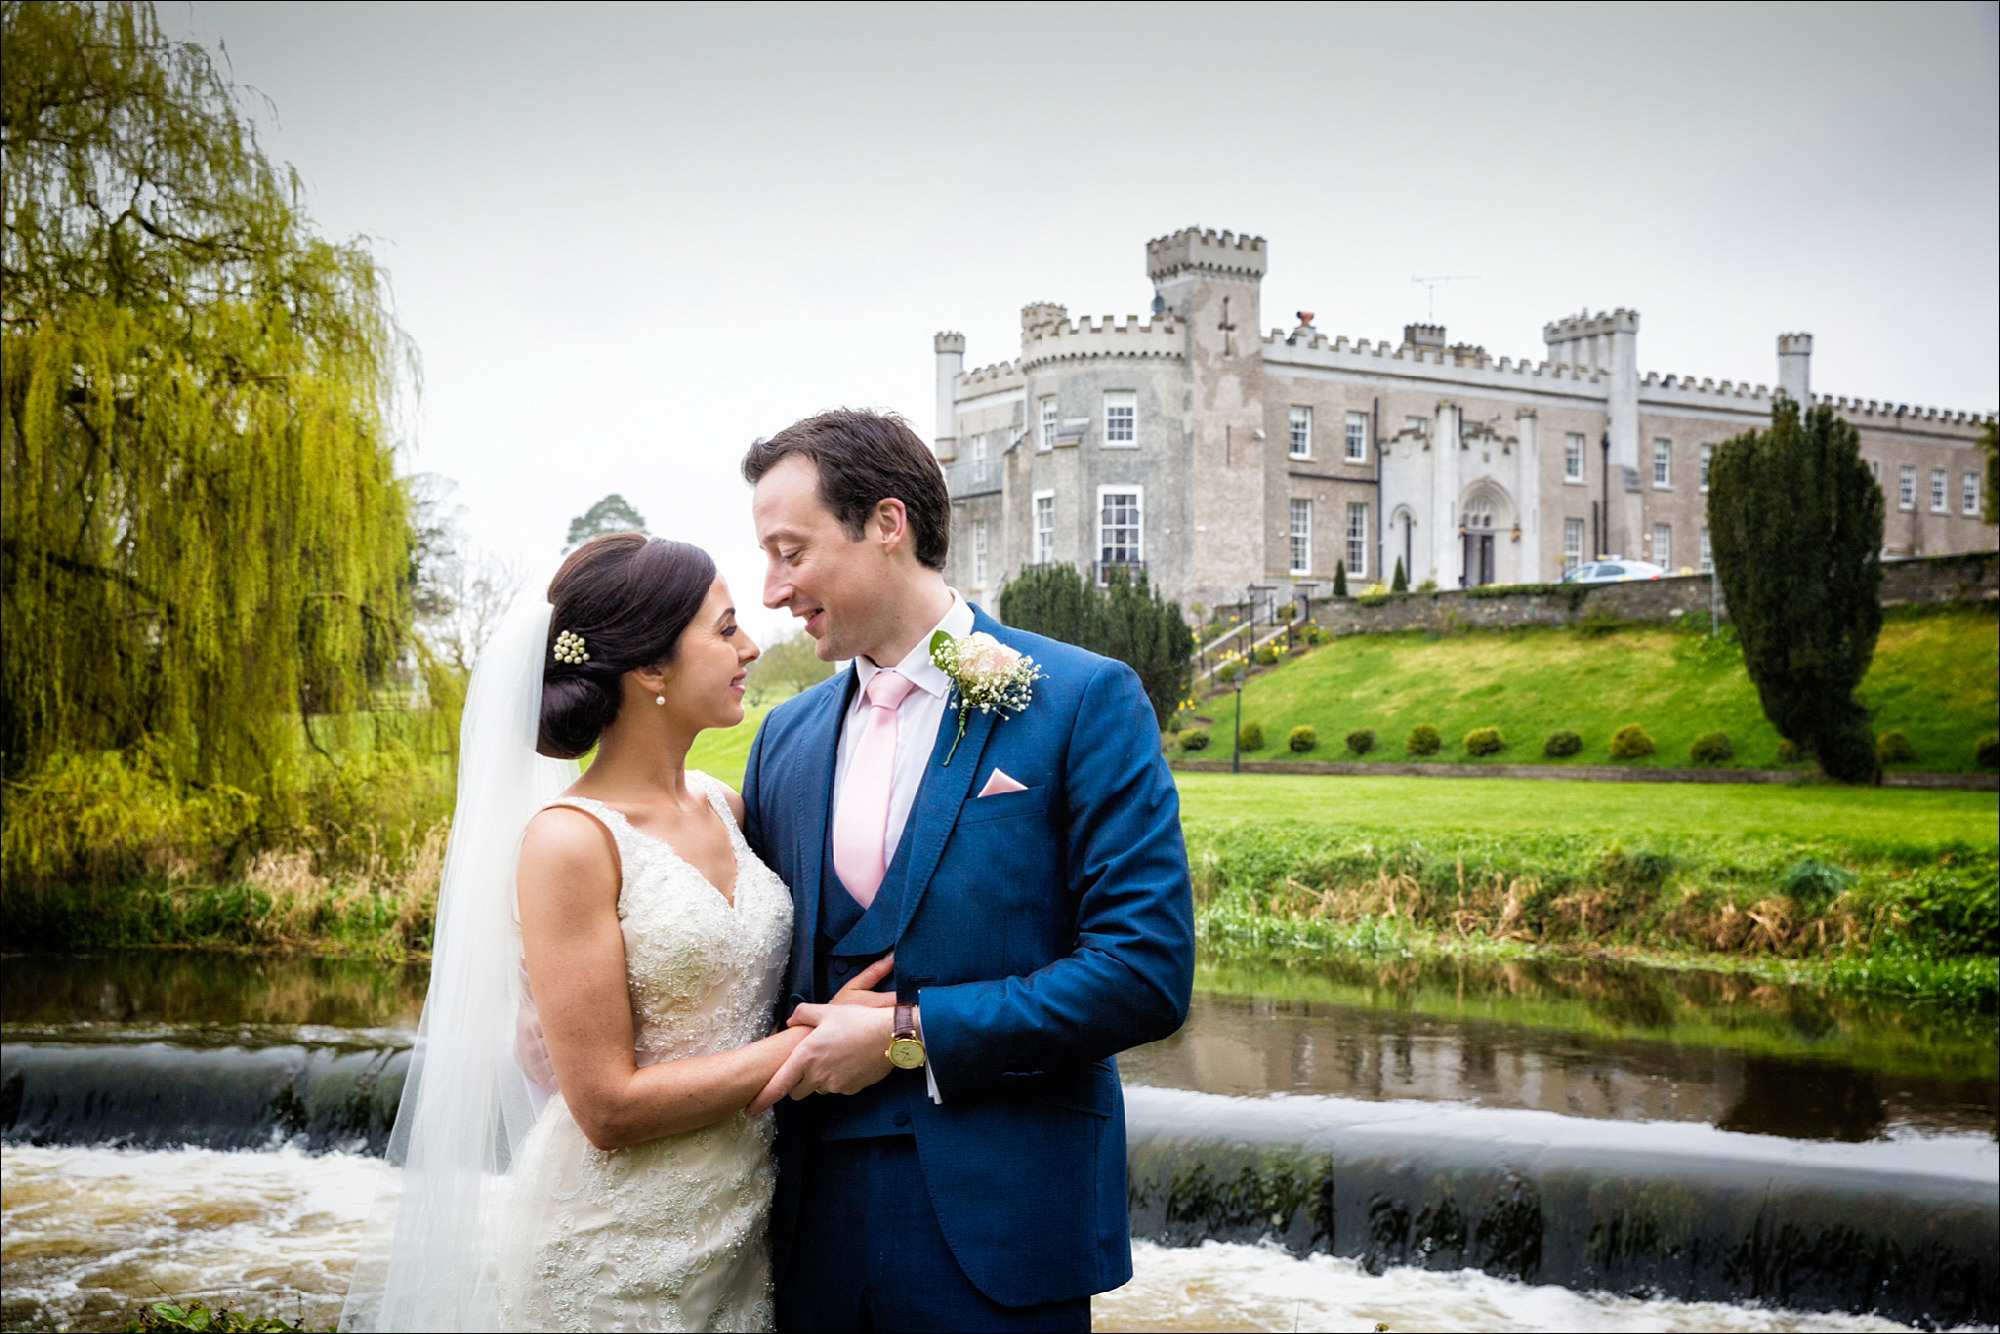 dublin wedding photographer david duignan photography bellingham castle weddings Ireland 0061